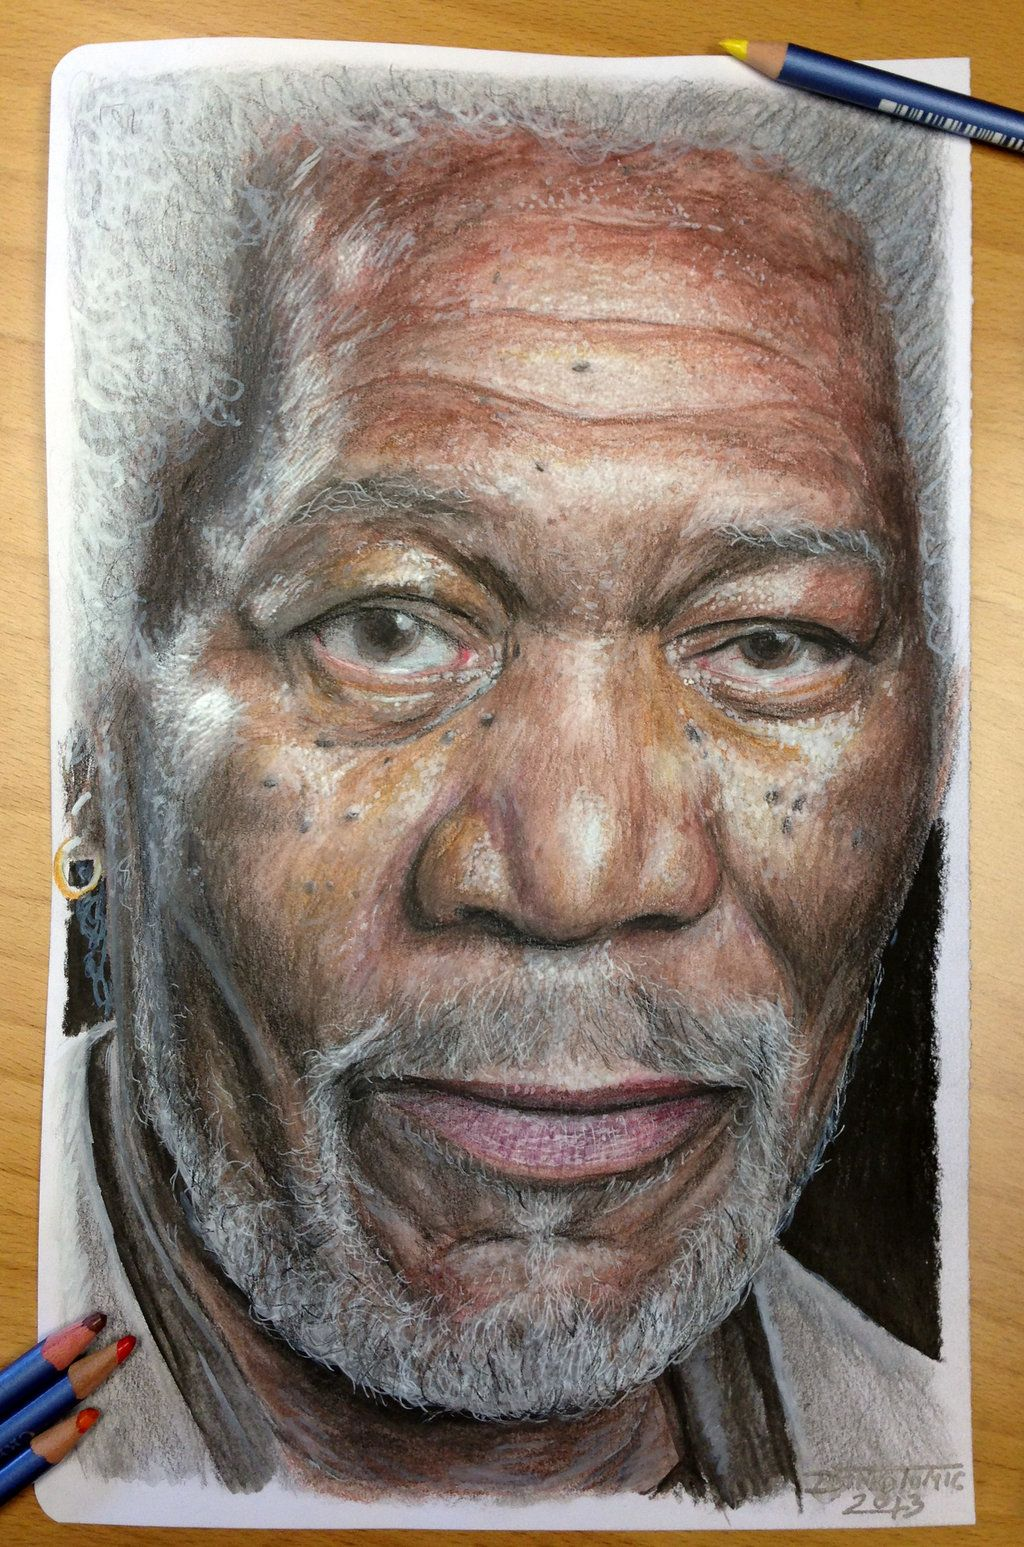 How to draw with colored pencils - Morgan Freeman Color Pencil Drawing By Atomiccircus On Deviantart